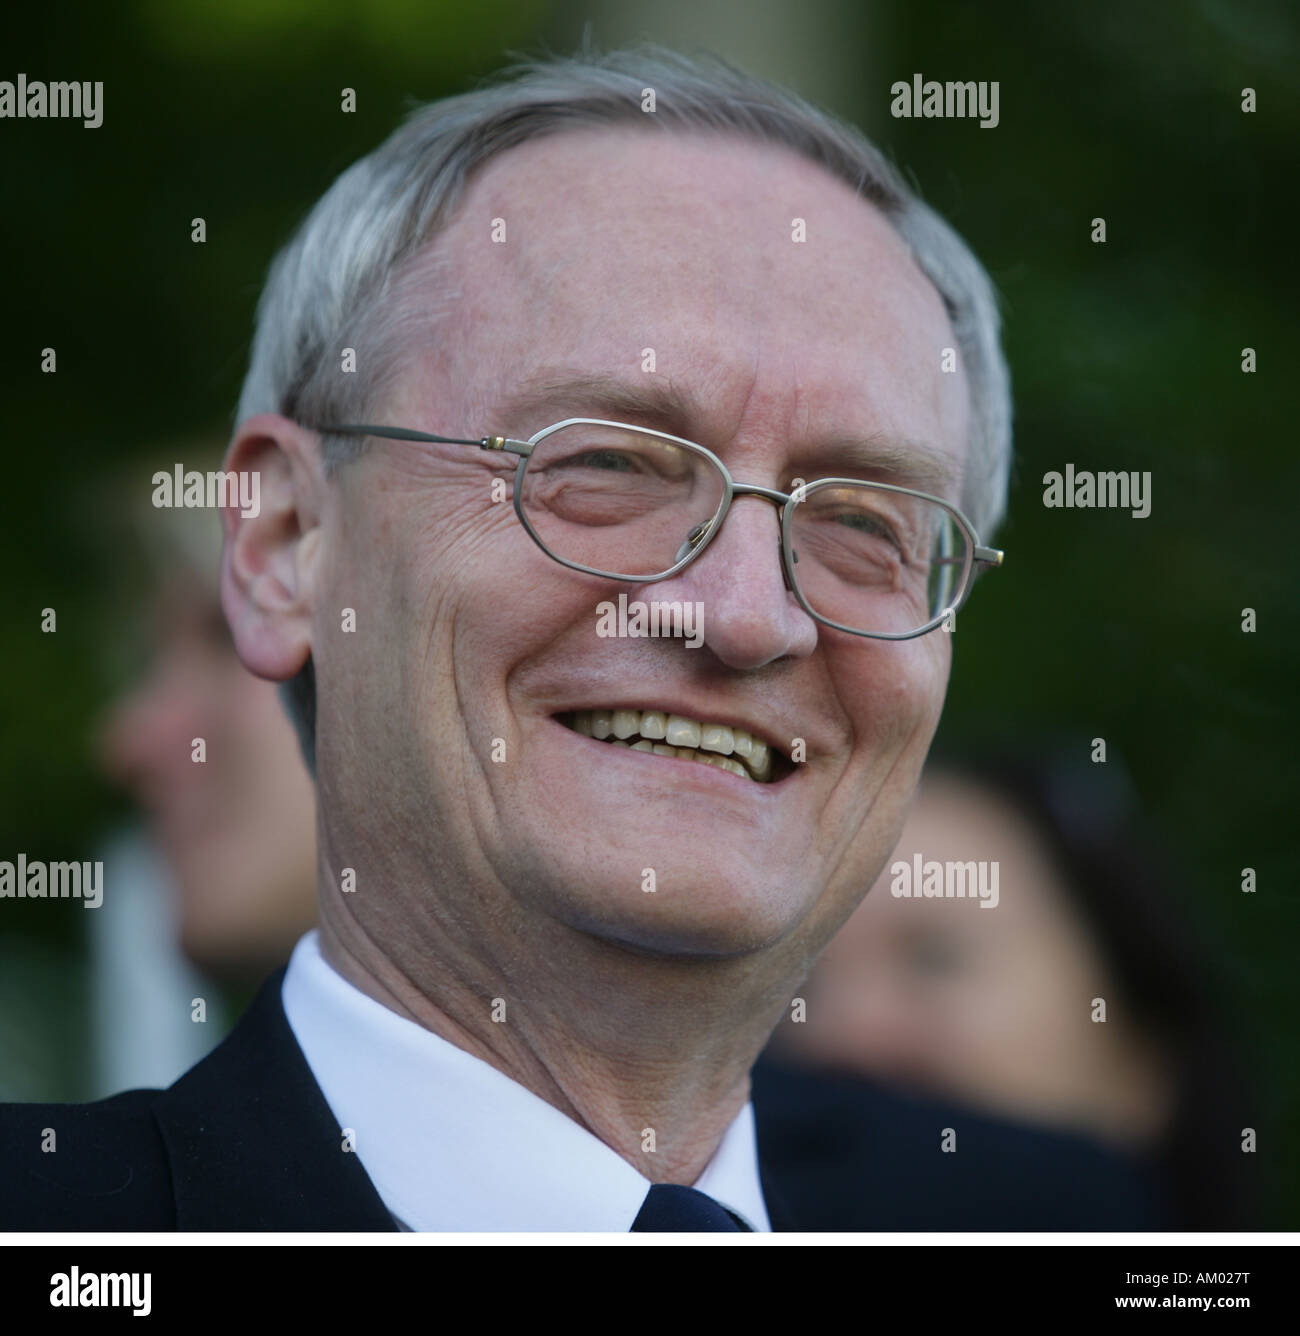 August Hanning, Federal undersecretary of the Interior and former President of the German intelligence service, - Stock Image